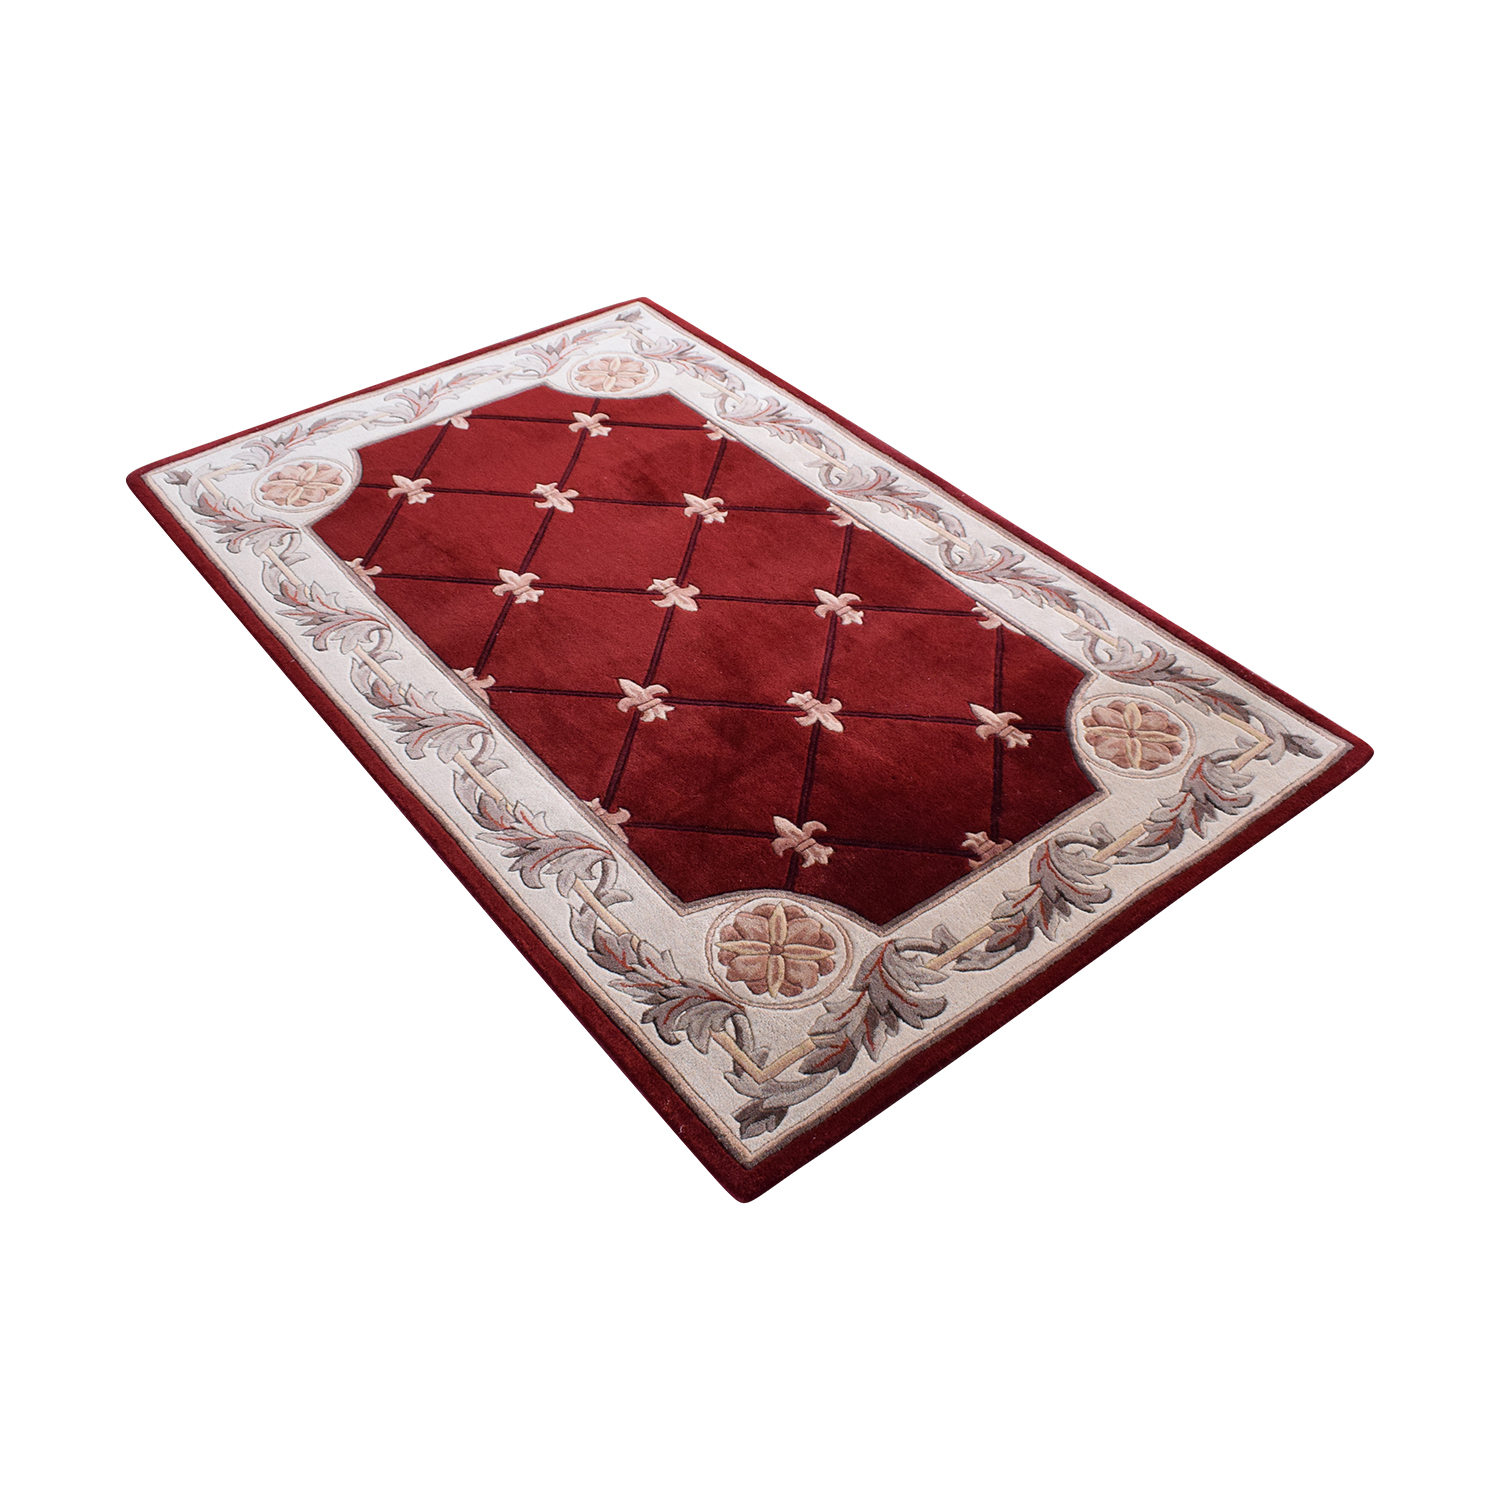 Macy's Macy's Kas Jewel Collection Classical Designed Red Area Rug